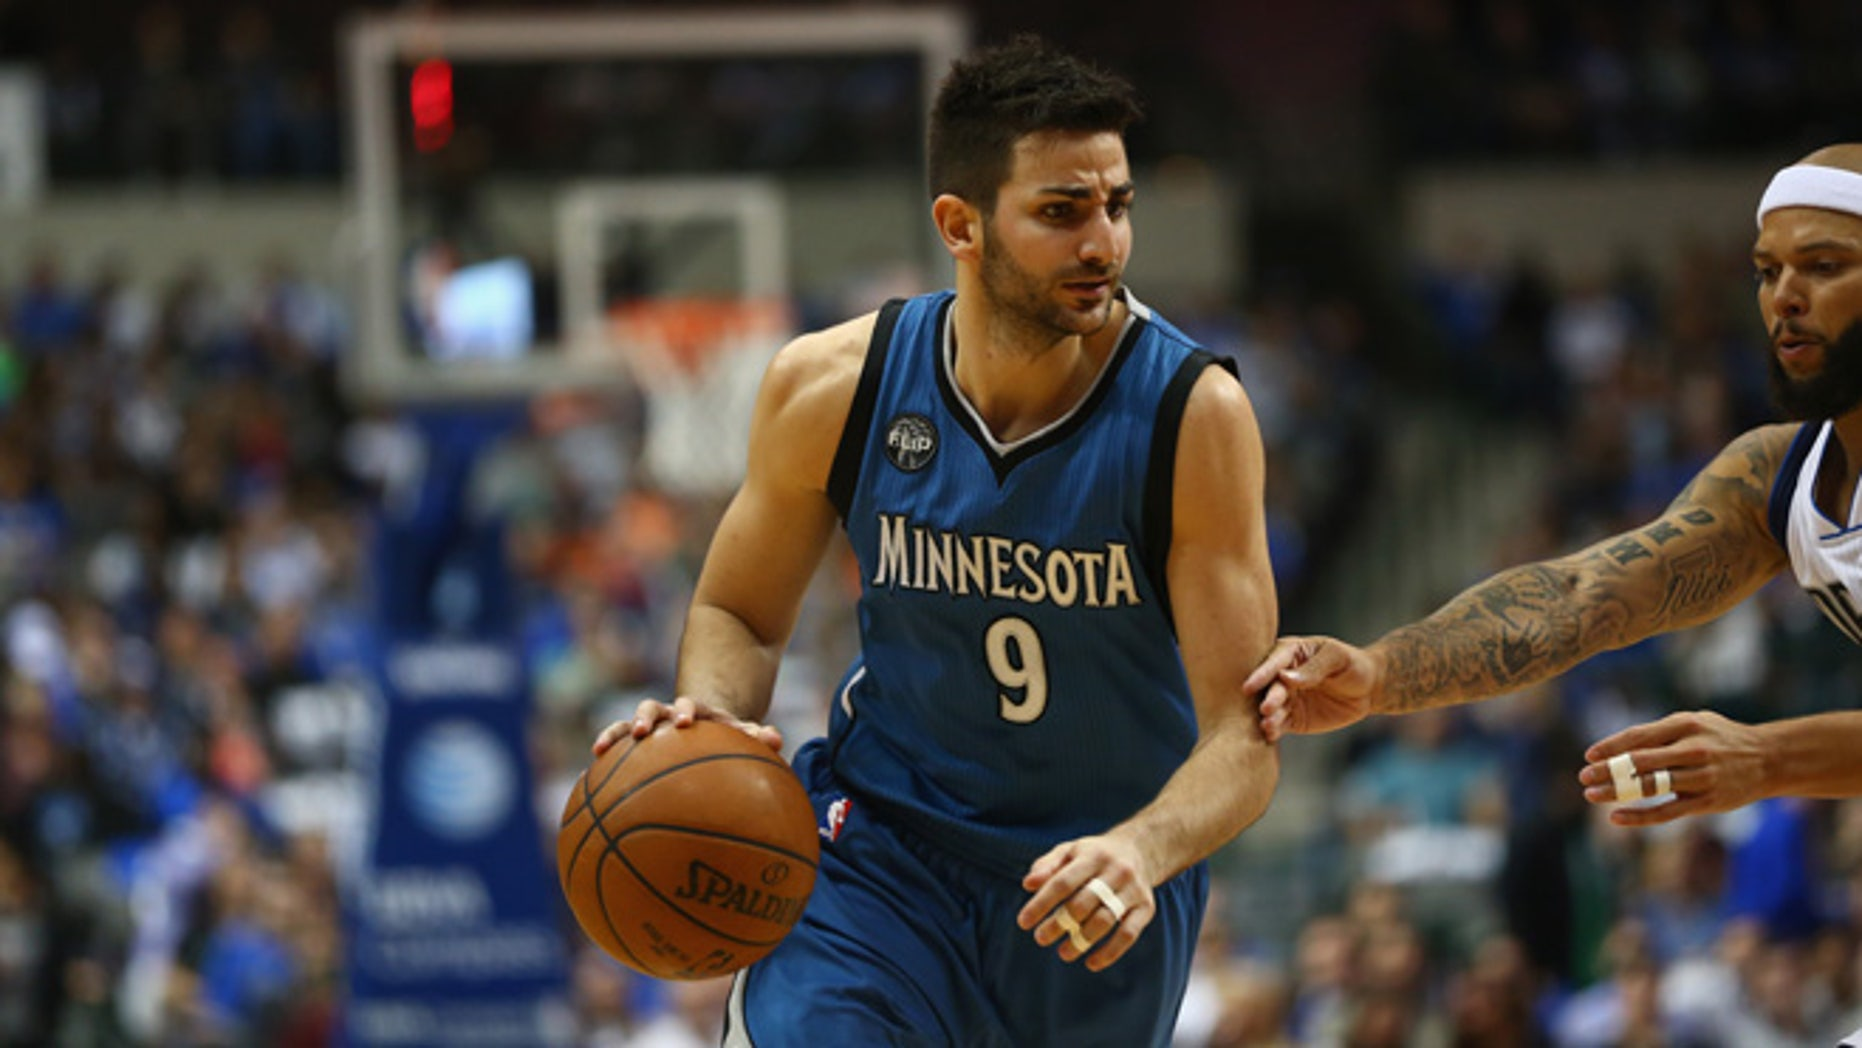 DALLAS, TX - FEBRUARY 28:  Ricky Rubio #9 of the Minnesota Timberwolves at American Airlines Center on February 28, 2016 in Dallas, Texas.  (Photo by Ronald Martinez/Getty Images)